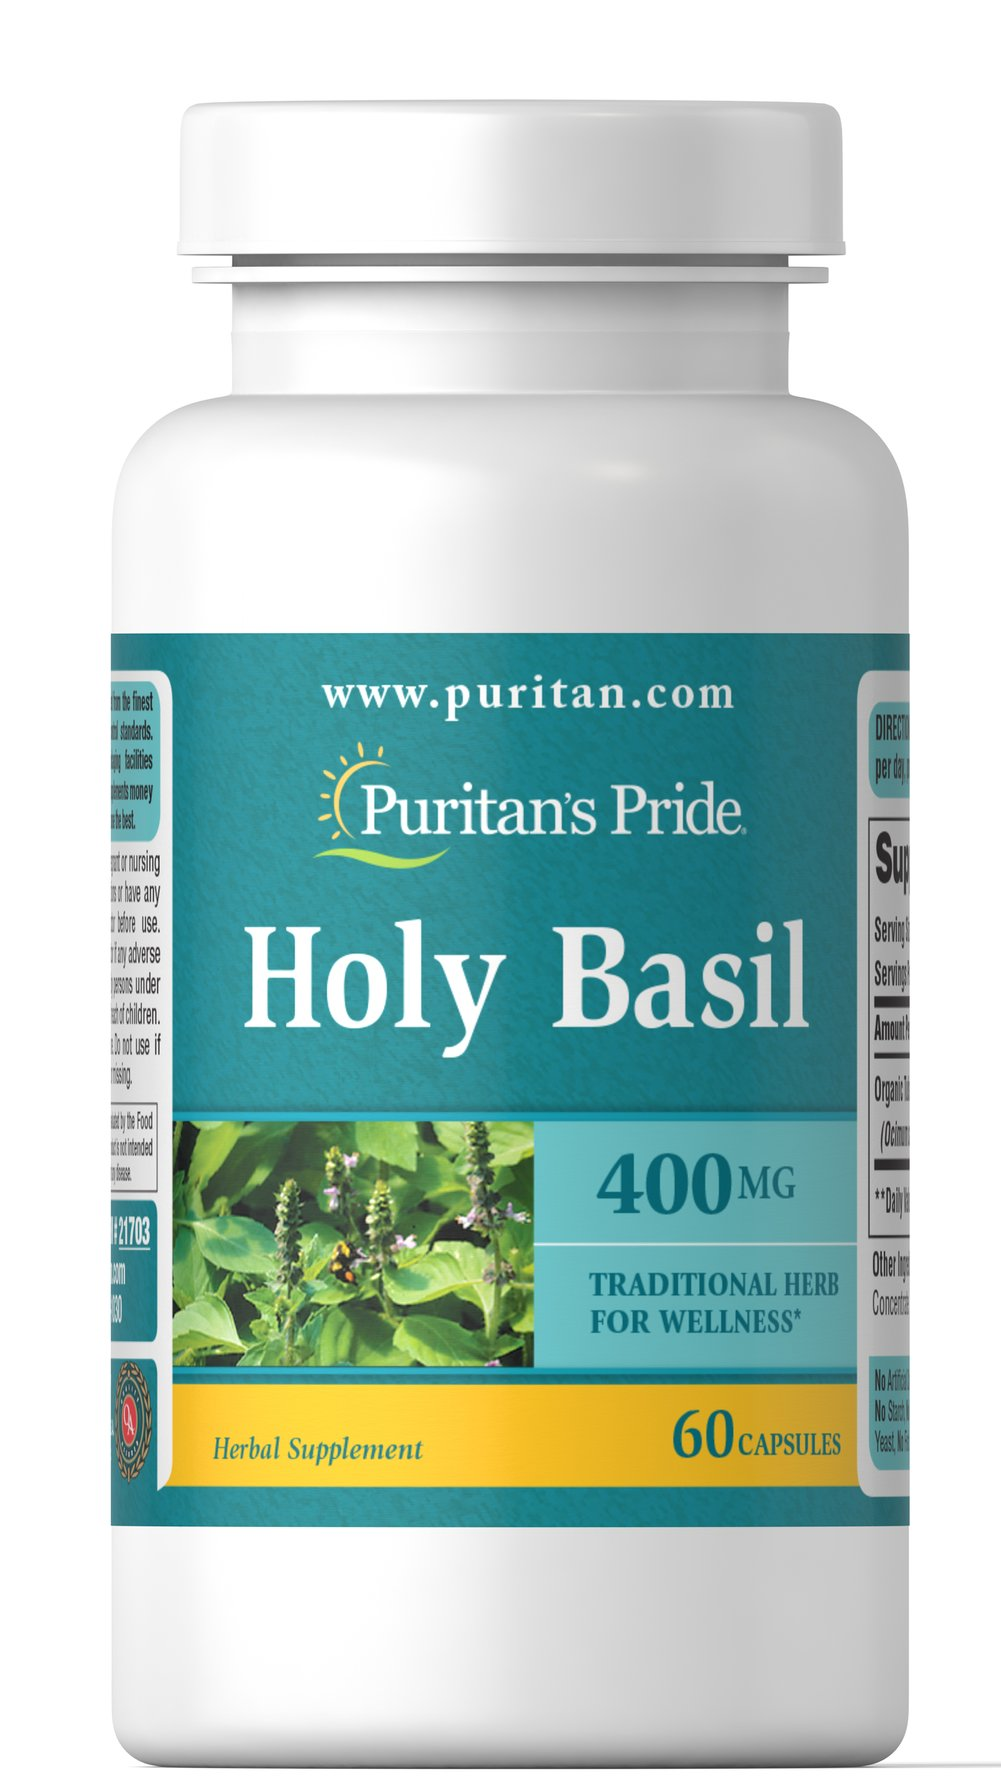 Holy Basil 400 mg Thumbnail Alternate Bottle View